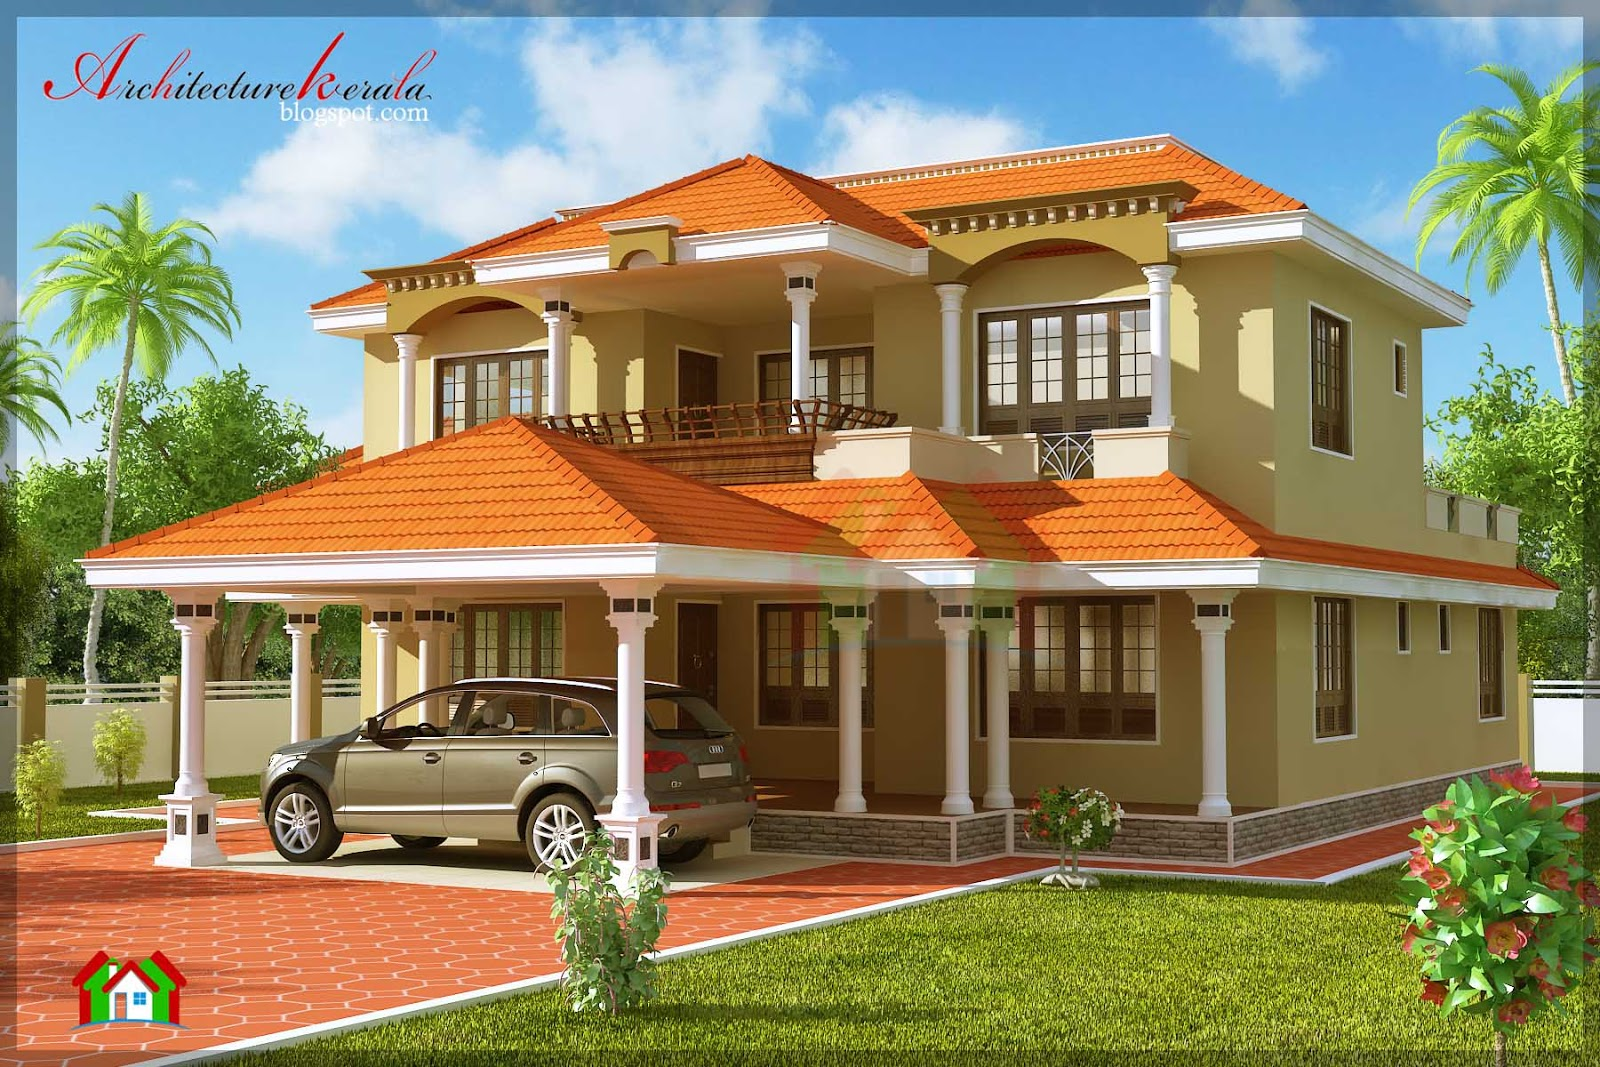 Traditional House Plans: Architecture Kerala: 4 BHK TRADITIONAL STYLE HOUSE PLAN